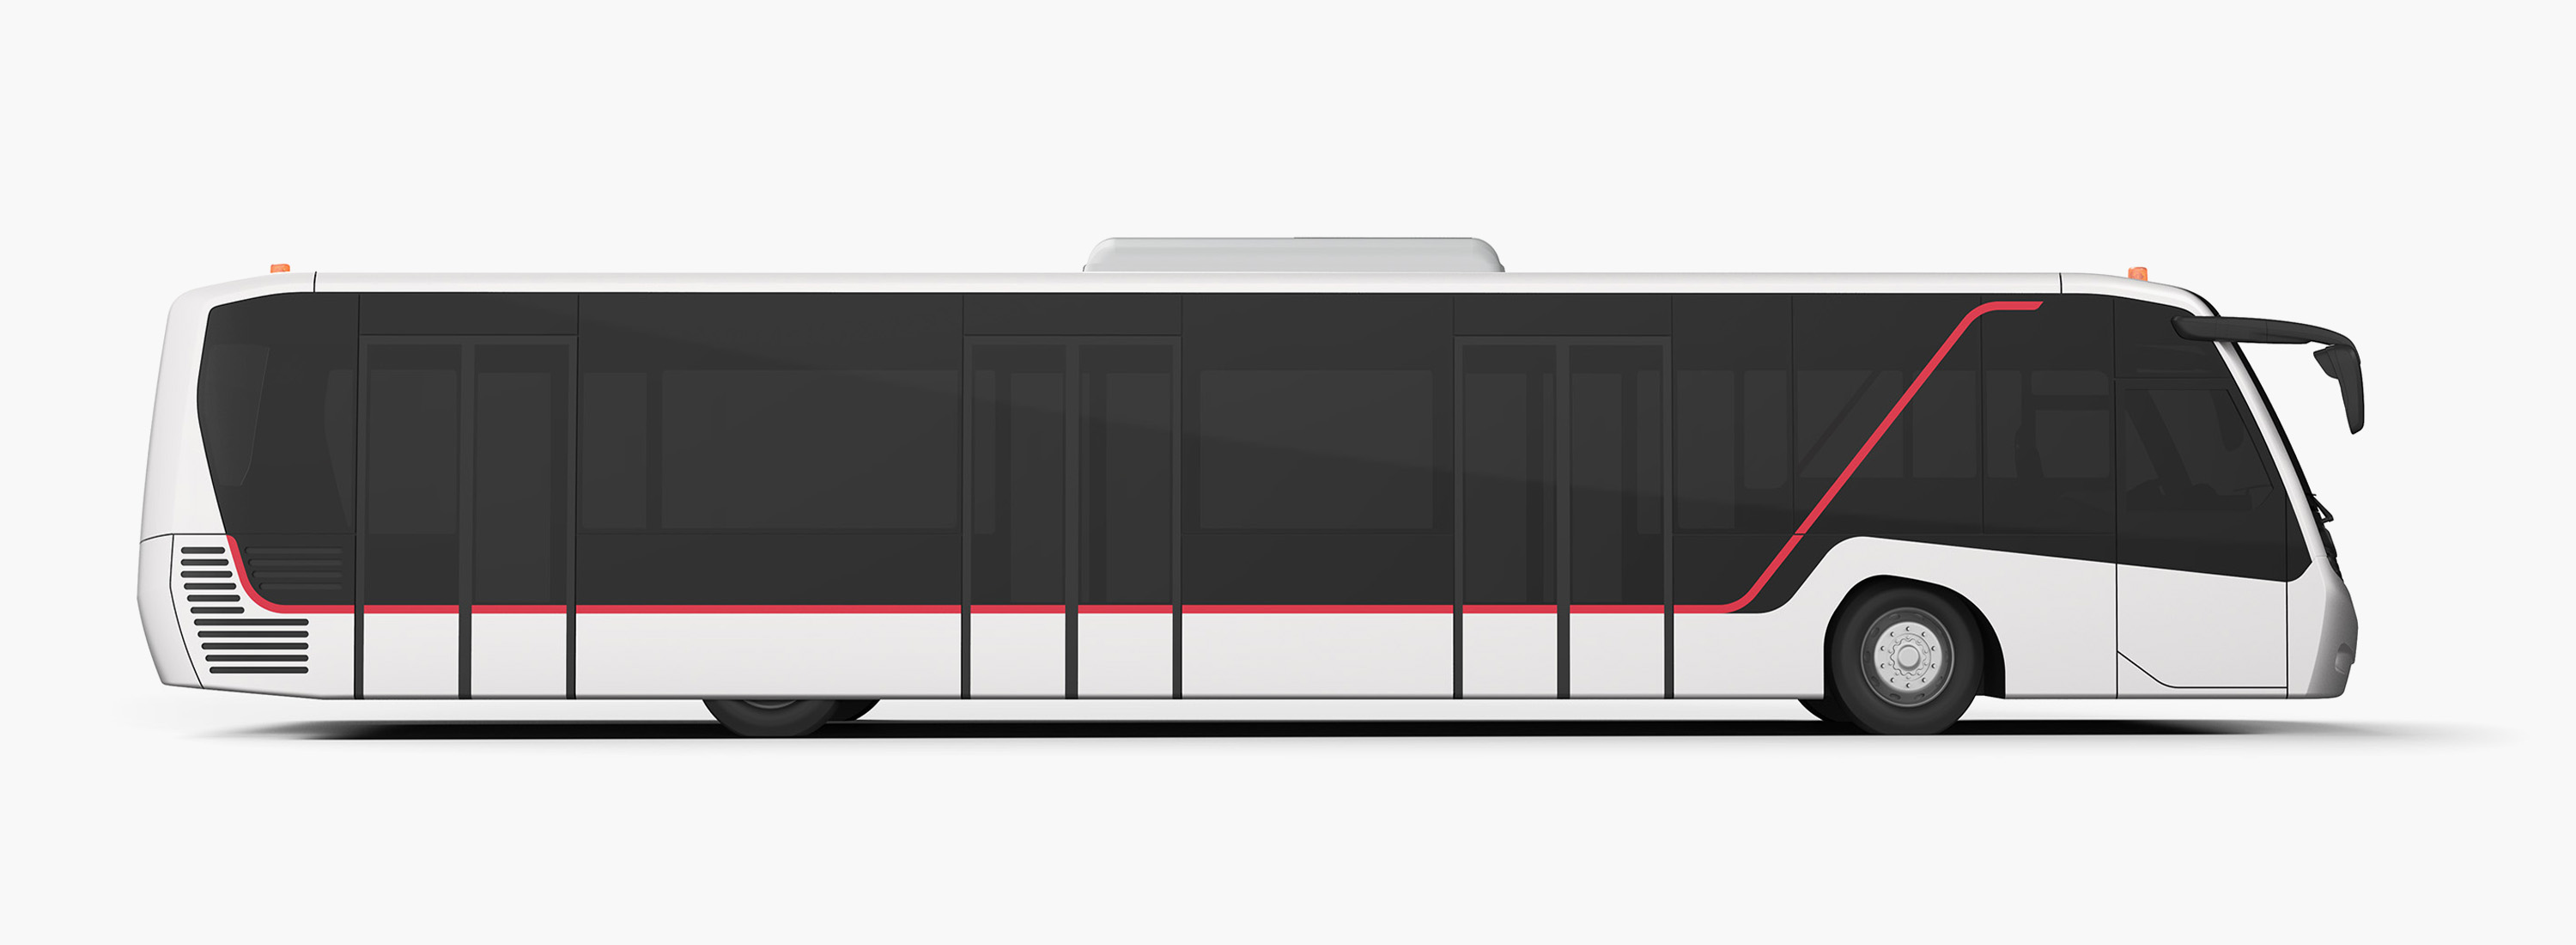 BMC Neoport Apron Bus Design Rendering